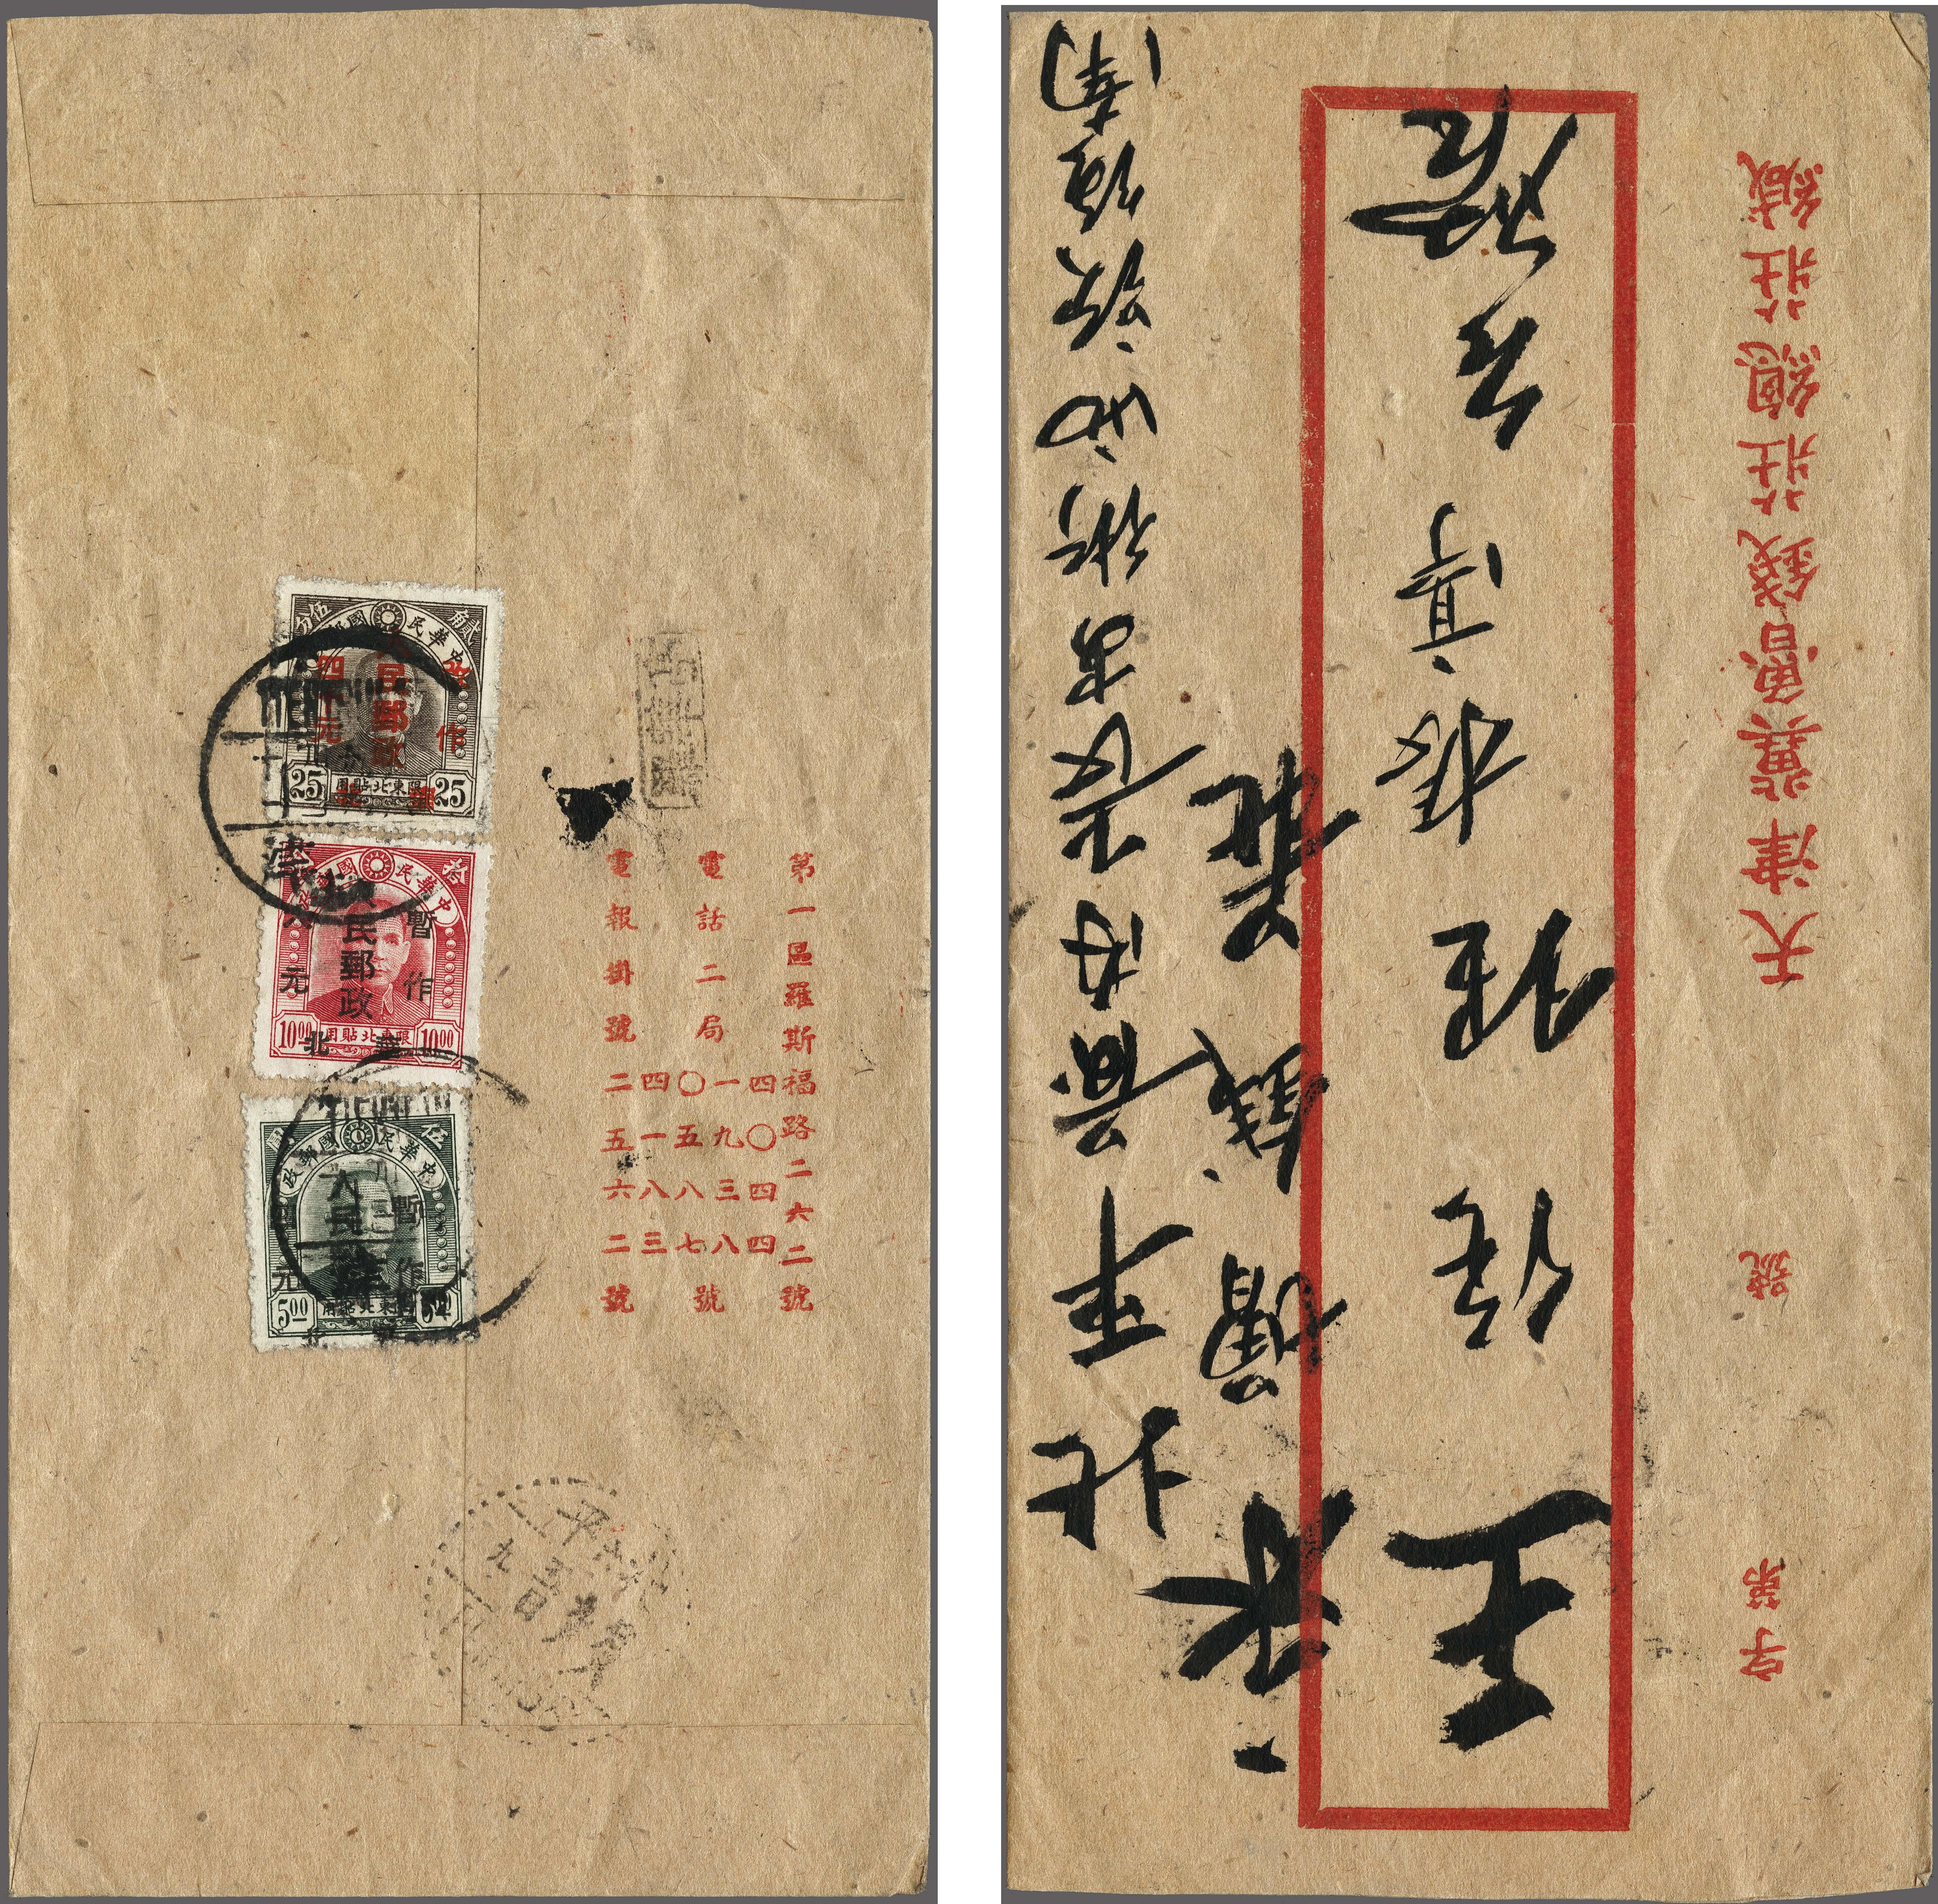 Lot 69 - China China Northern Provinces -  Corinphila Veilingen Auction 250-253 - Day 1 - Foreign countries